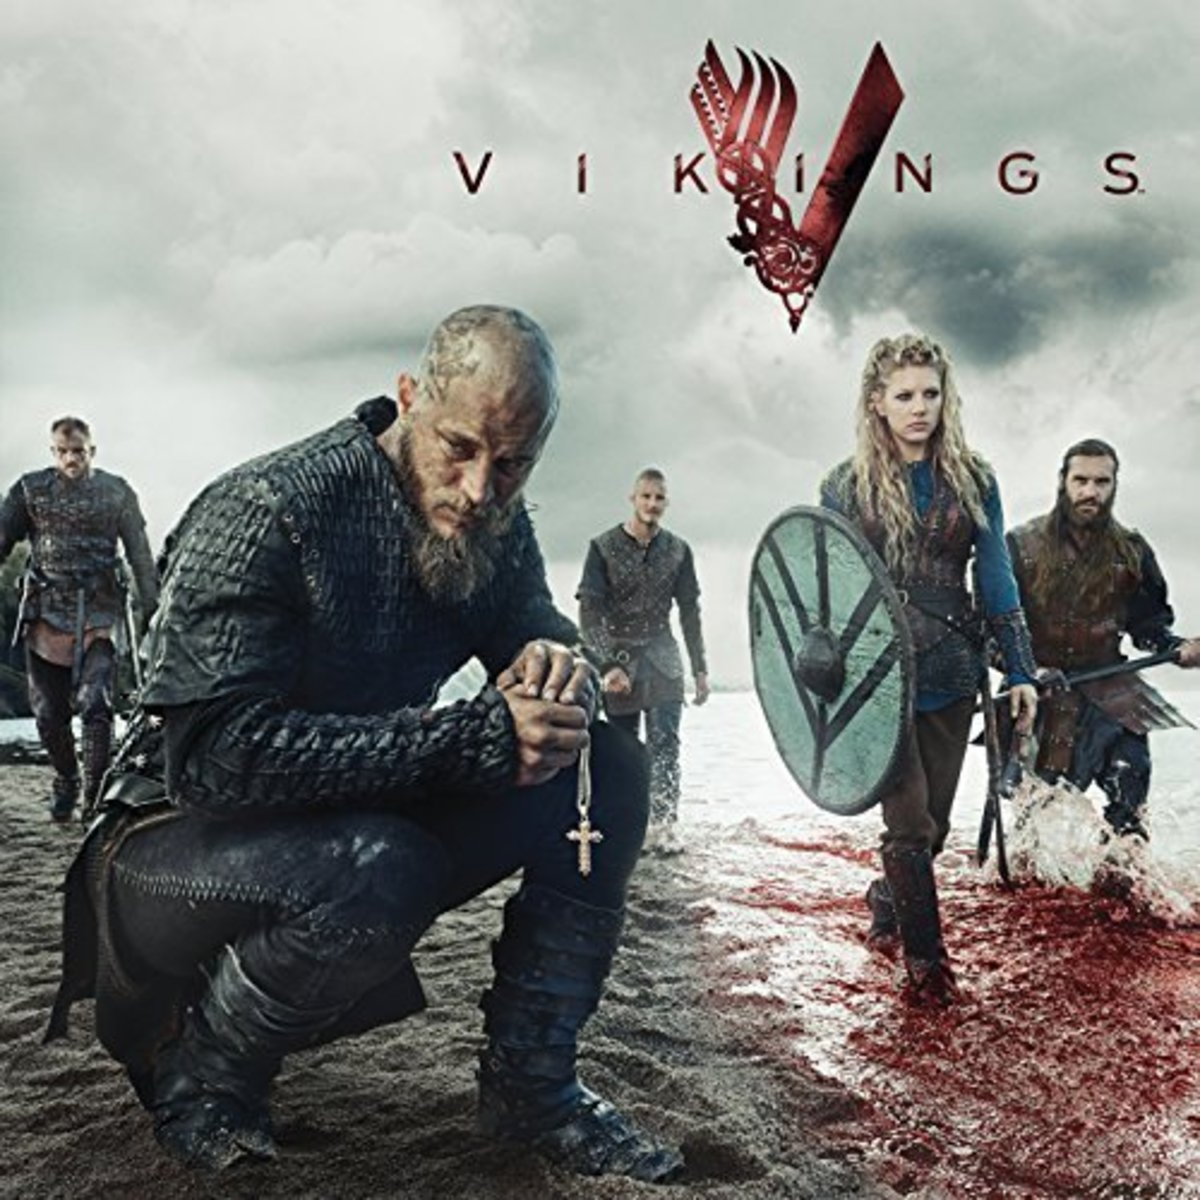 Vikings | 20 TV Shows Like Game of Thrones You Should Watch